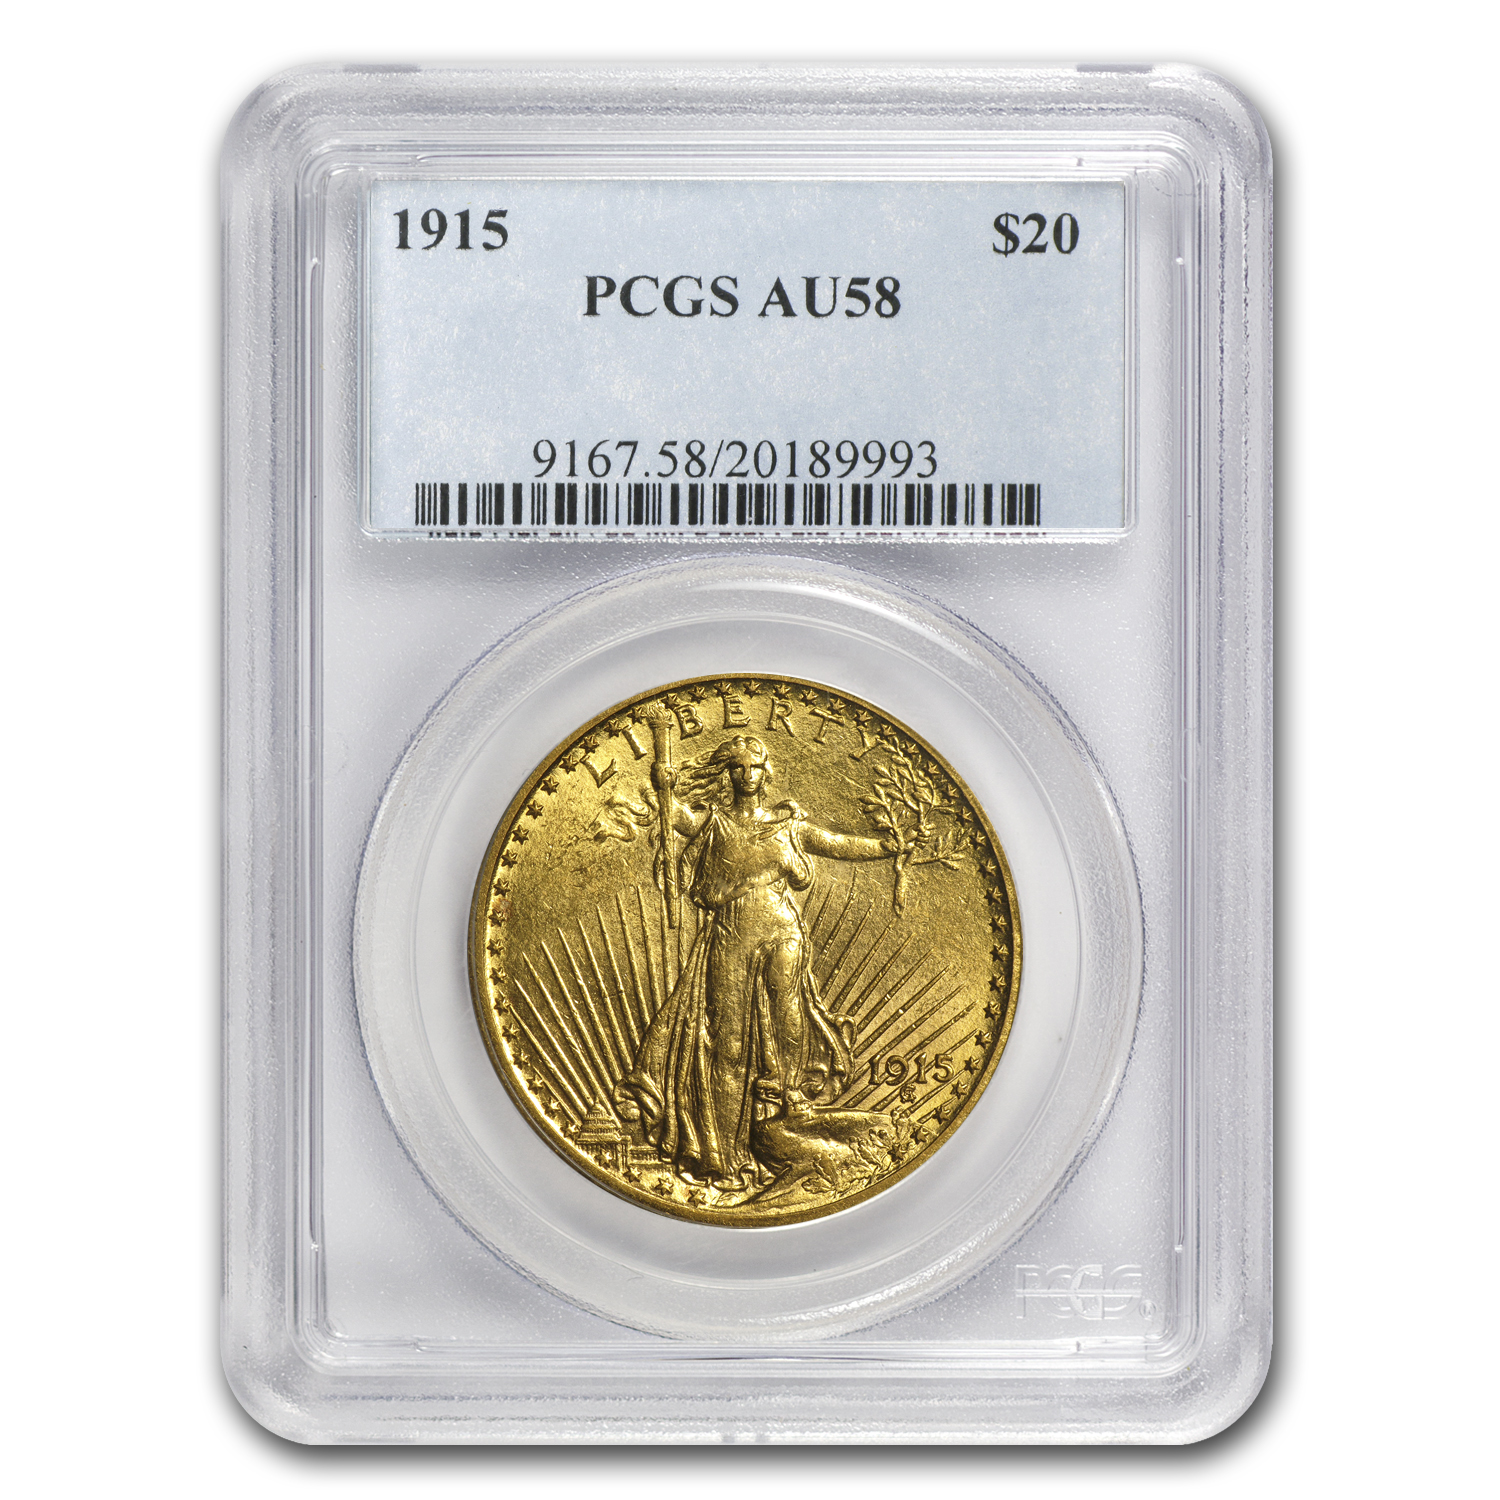 1915 $20 St. Gaudens Gold Double Eagle AU-58 PCGS